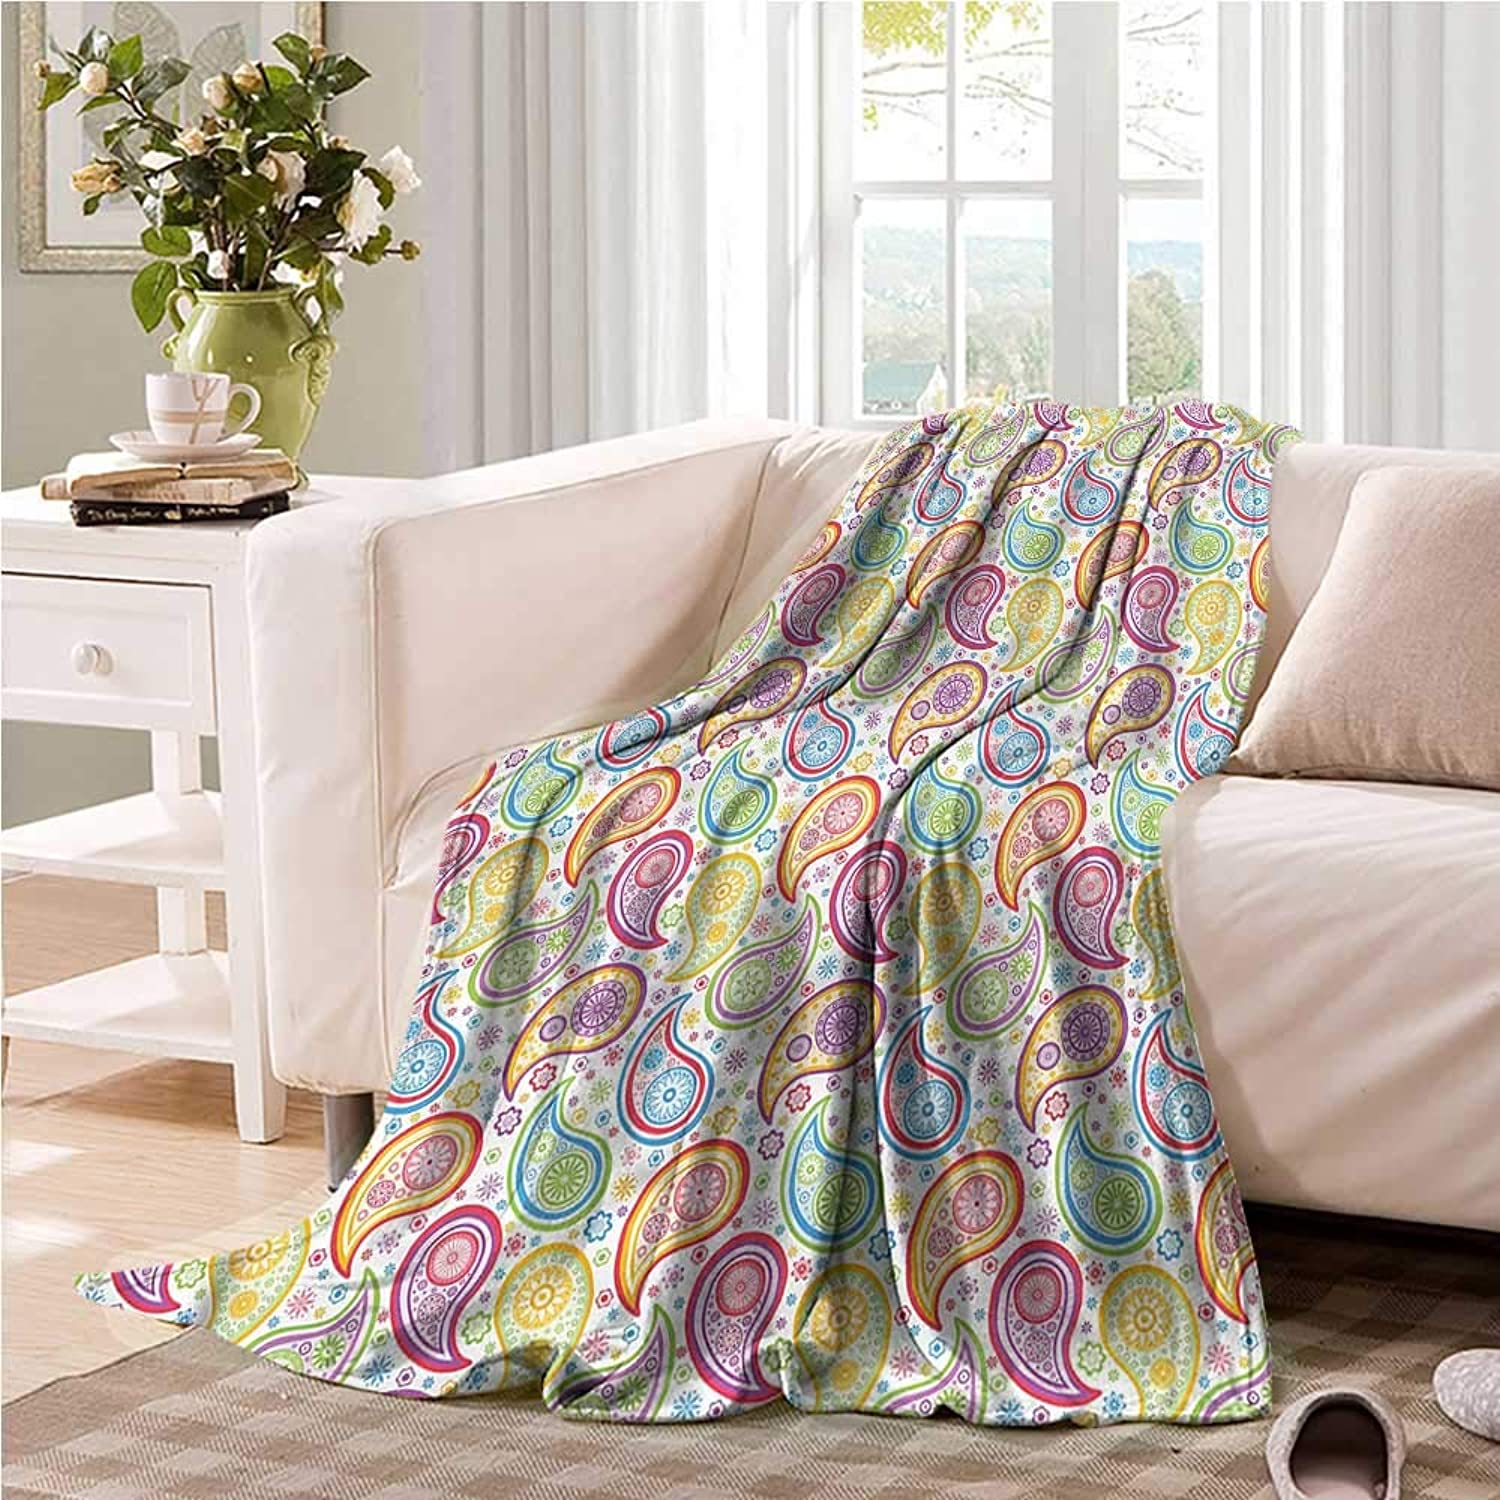 Oncegod Nap Blanket Paisley colord Pattern Flower Camping Throw,Office wrap 60  W x 51  L